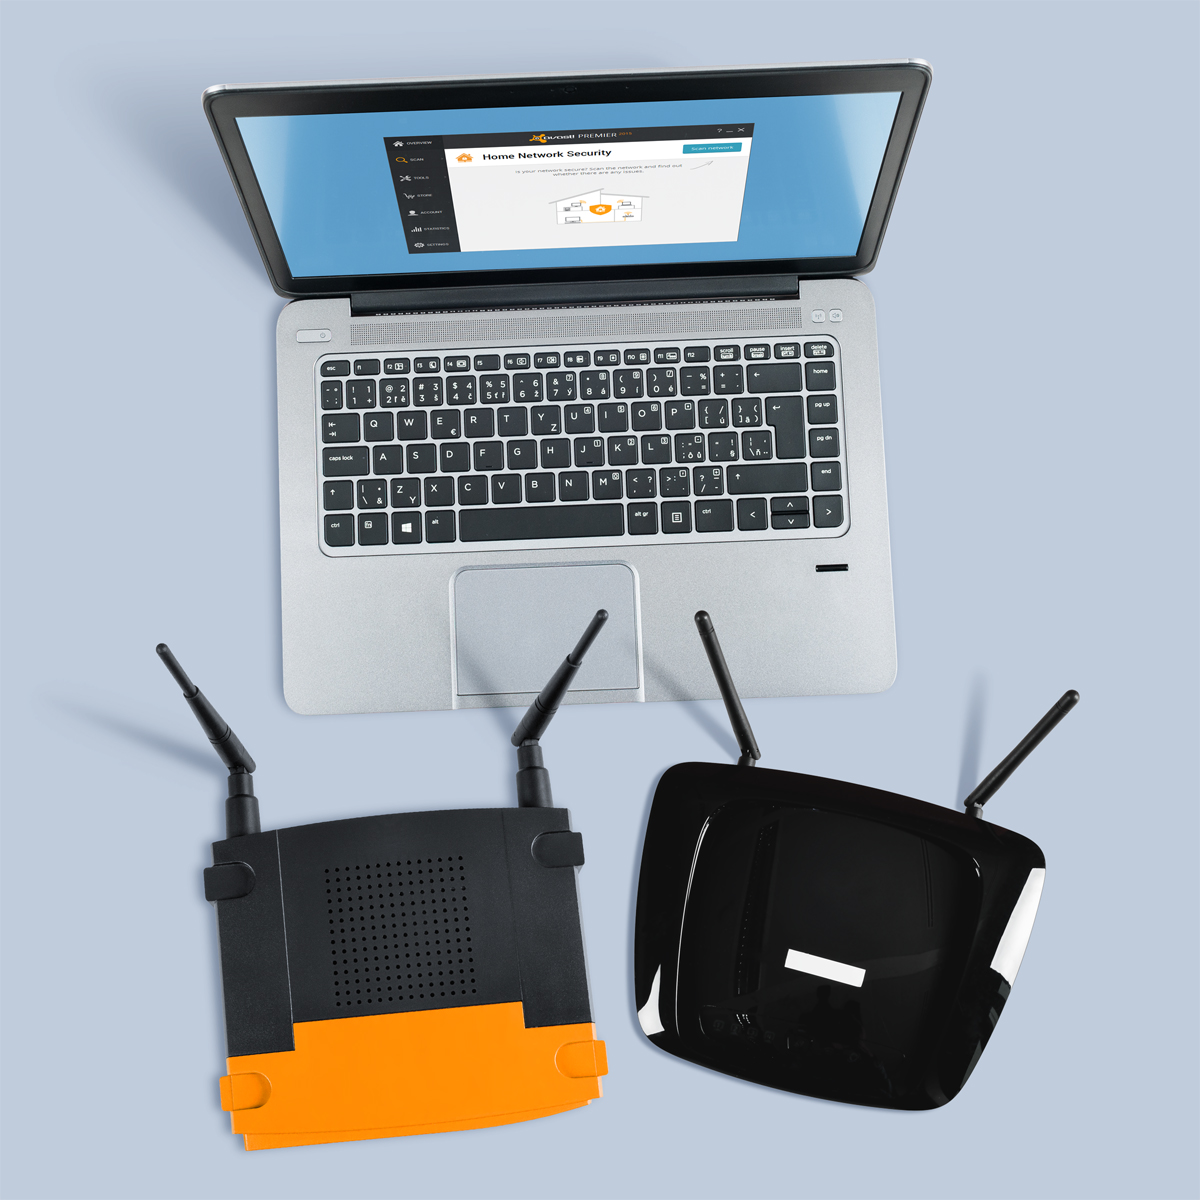 Don't let your router be the weakest link when it comes to protecting your home business.